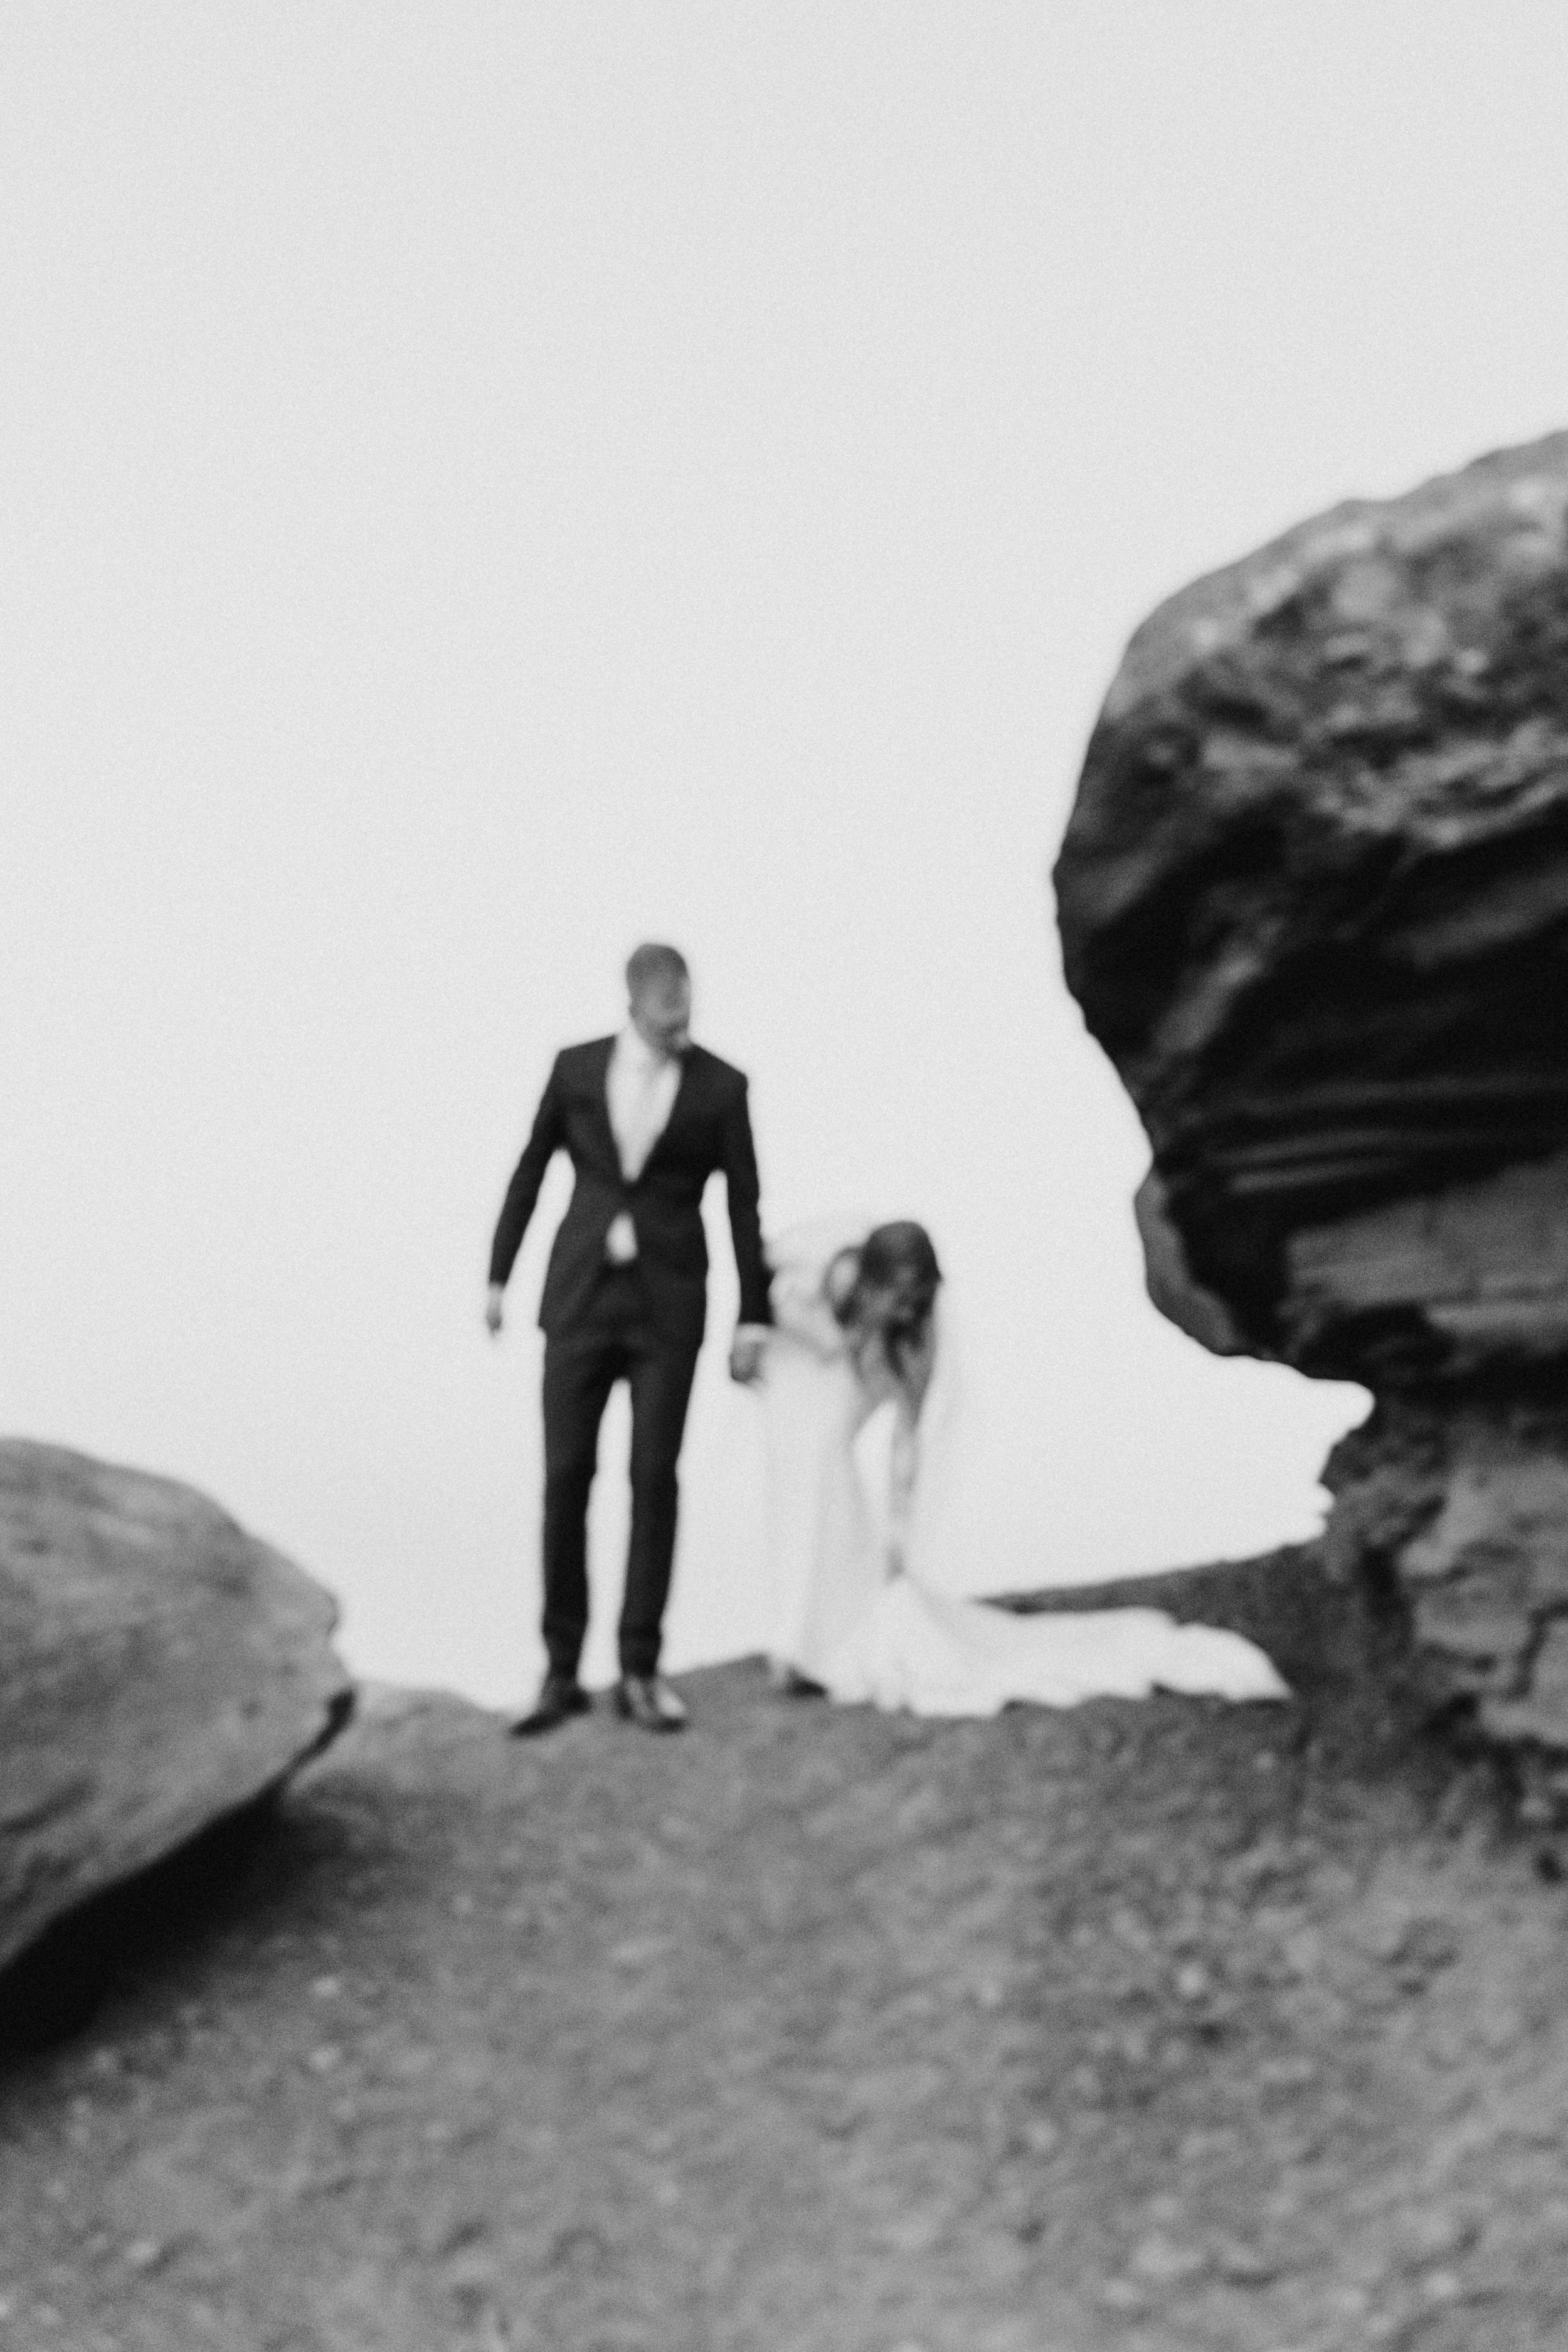 dead-horse-point-southern-utah-bridal-wedding-photography-michael-cozzens-photo-video-115.jpg